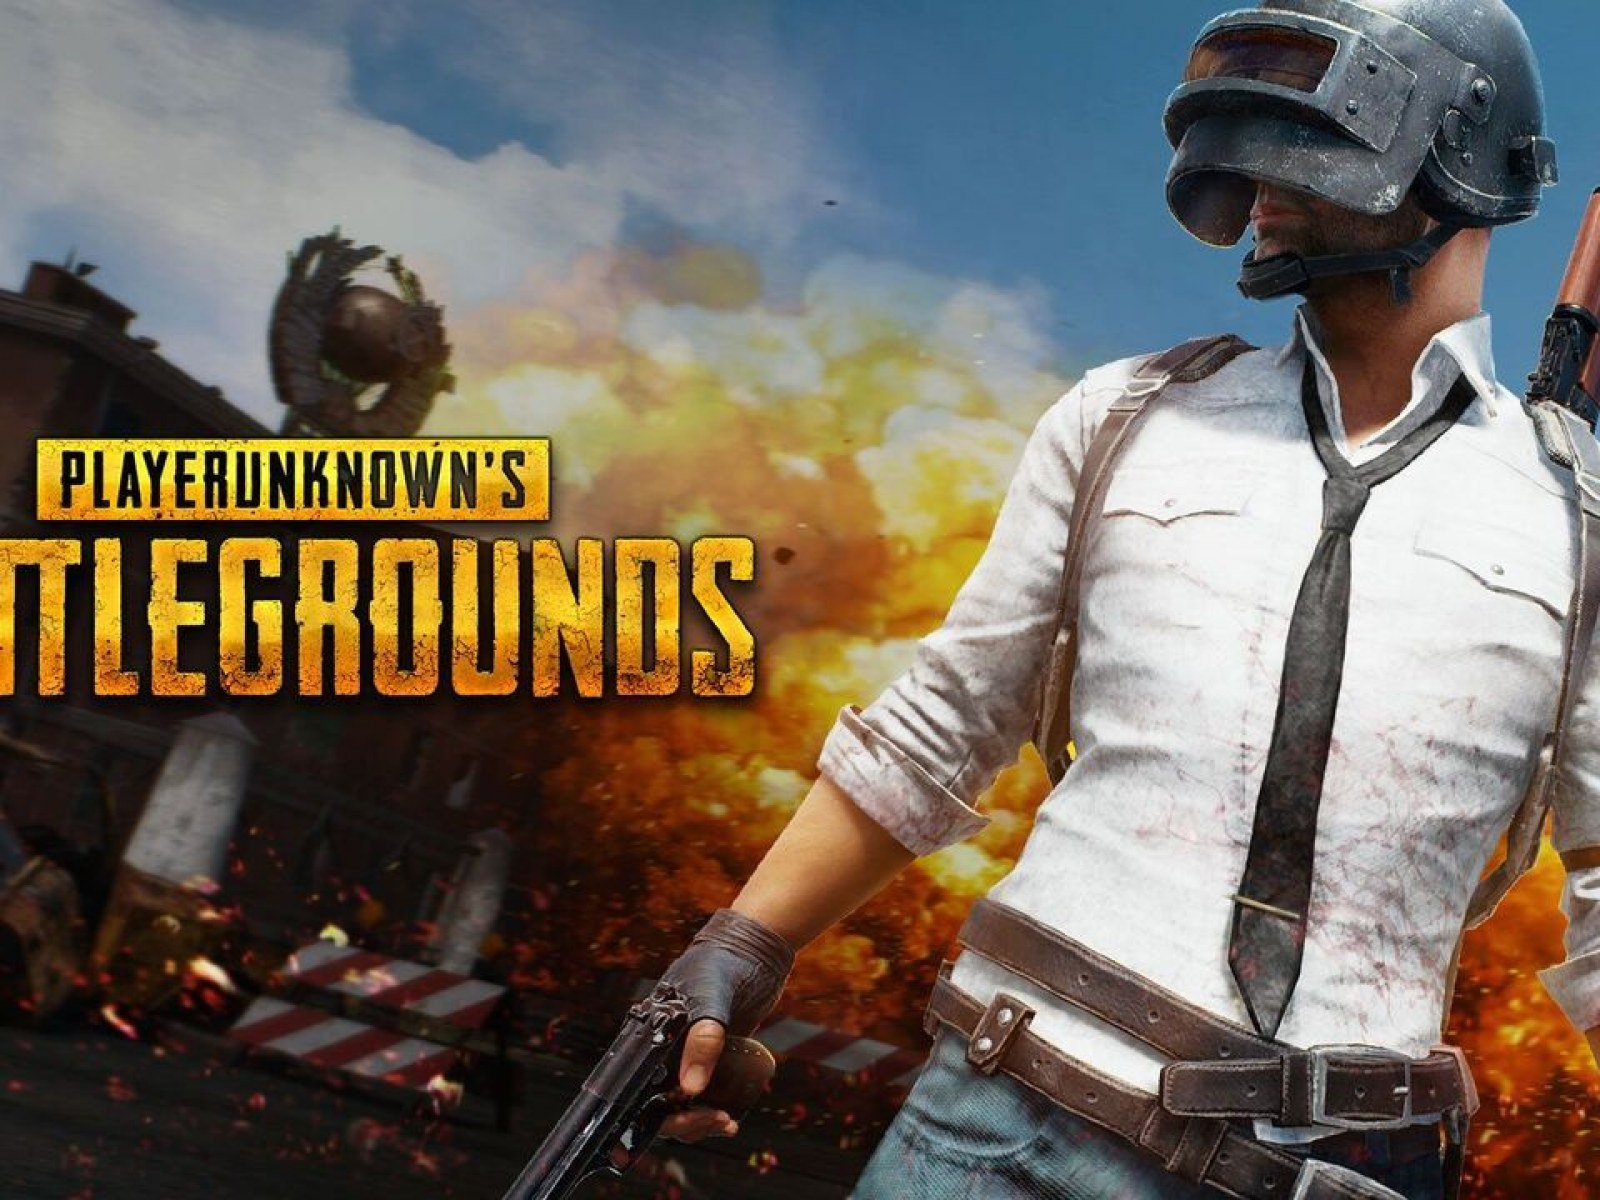 PUBG Mobile' Internet Error Message on Android & iOS - How to Fix It